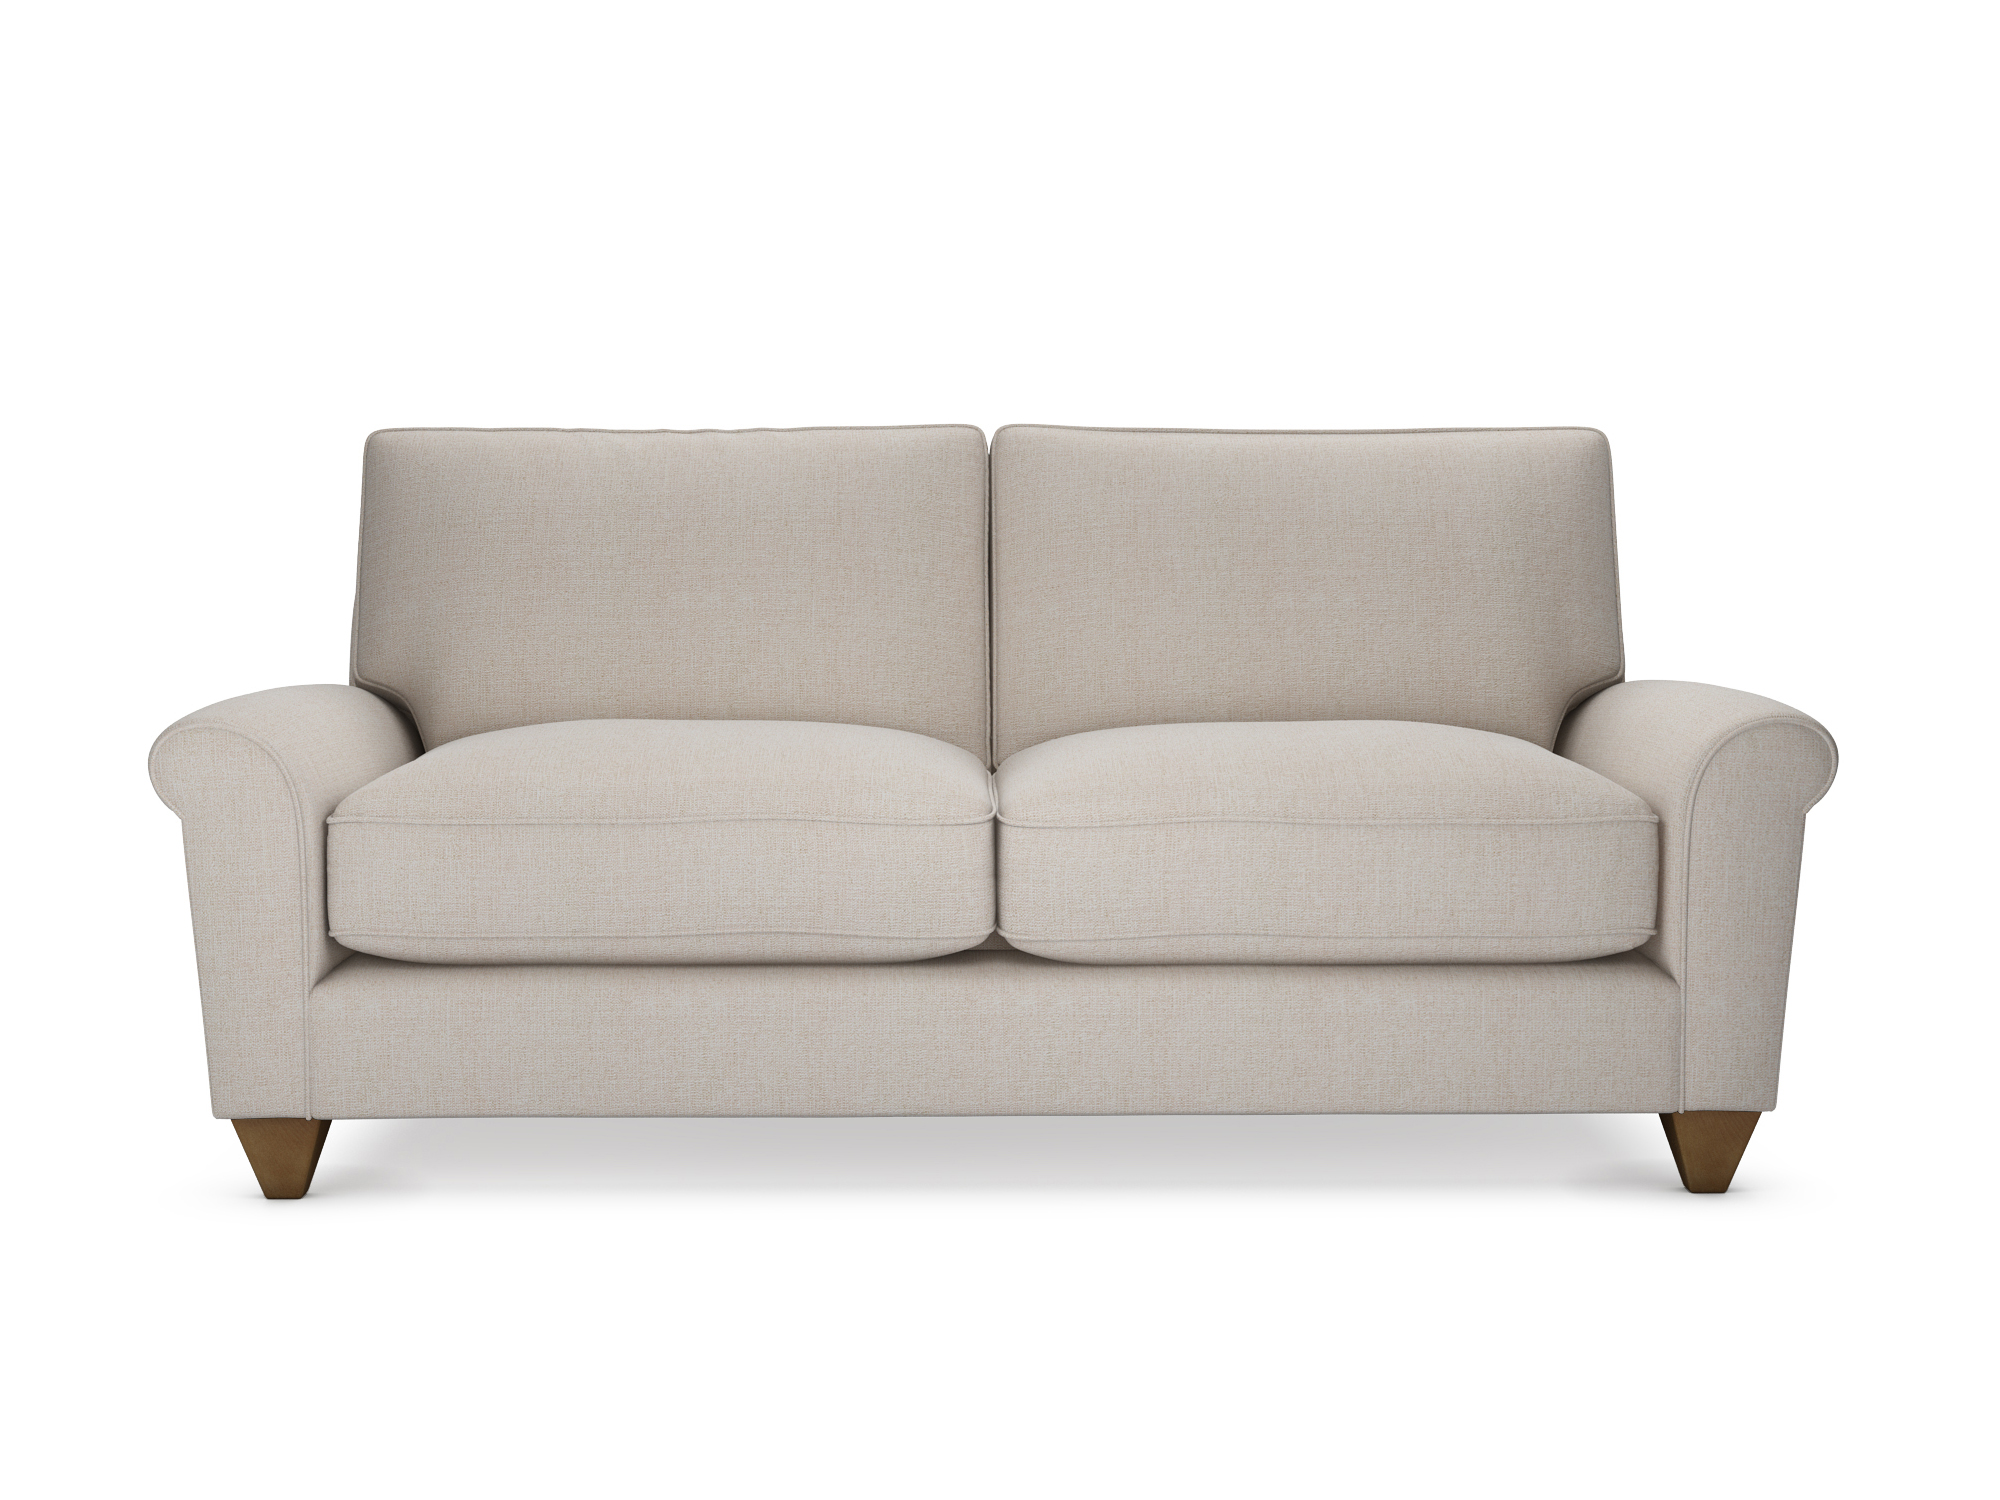 holly sofa the lounge co best beds for rvs sofas neutral